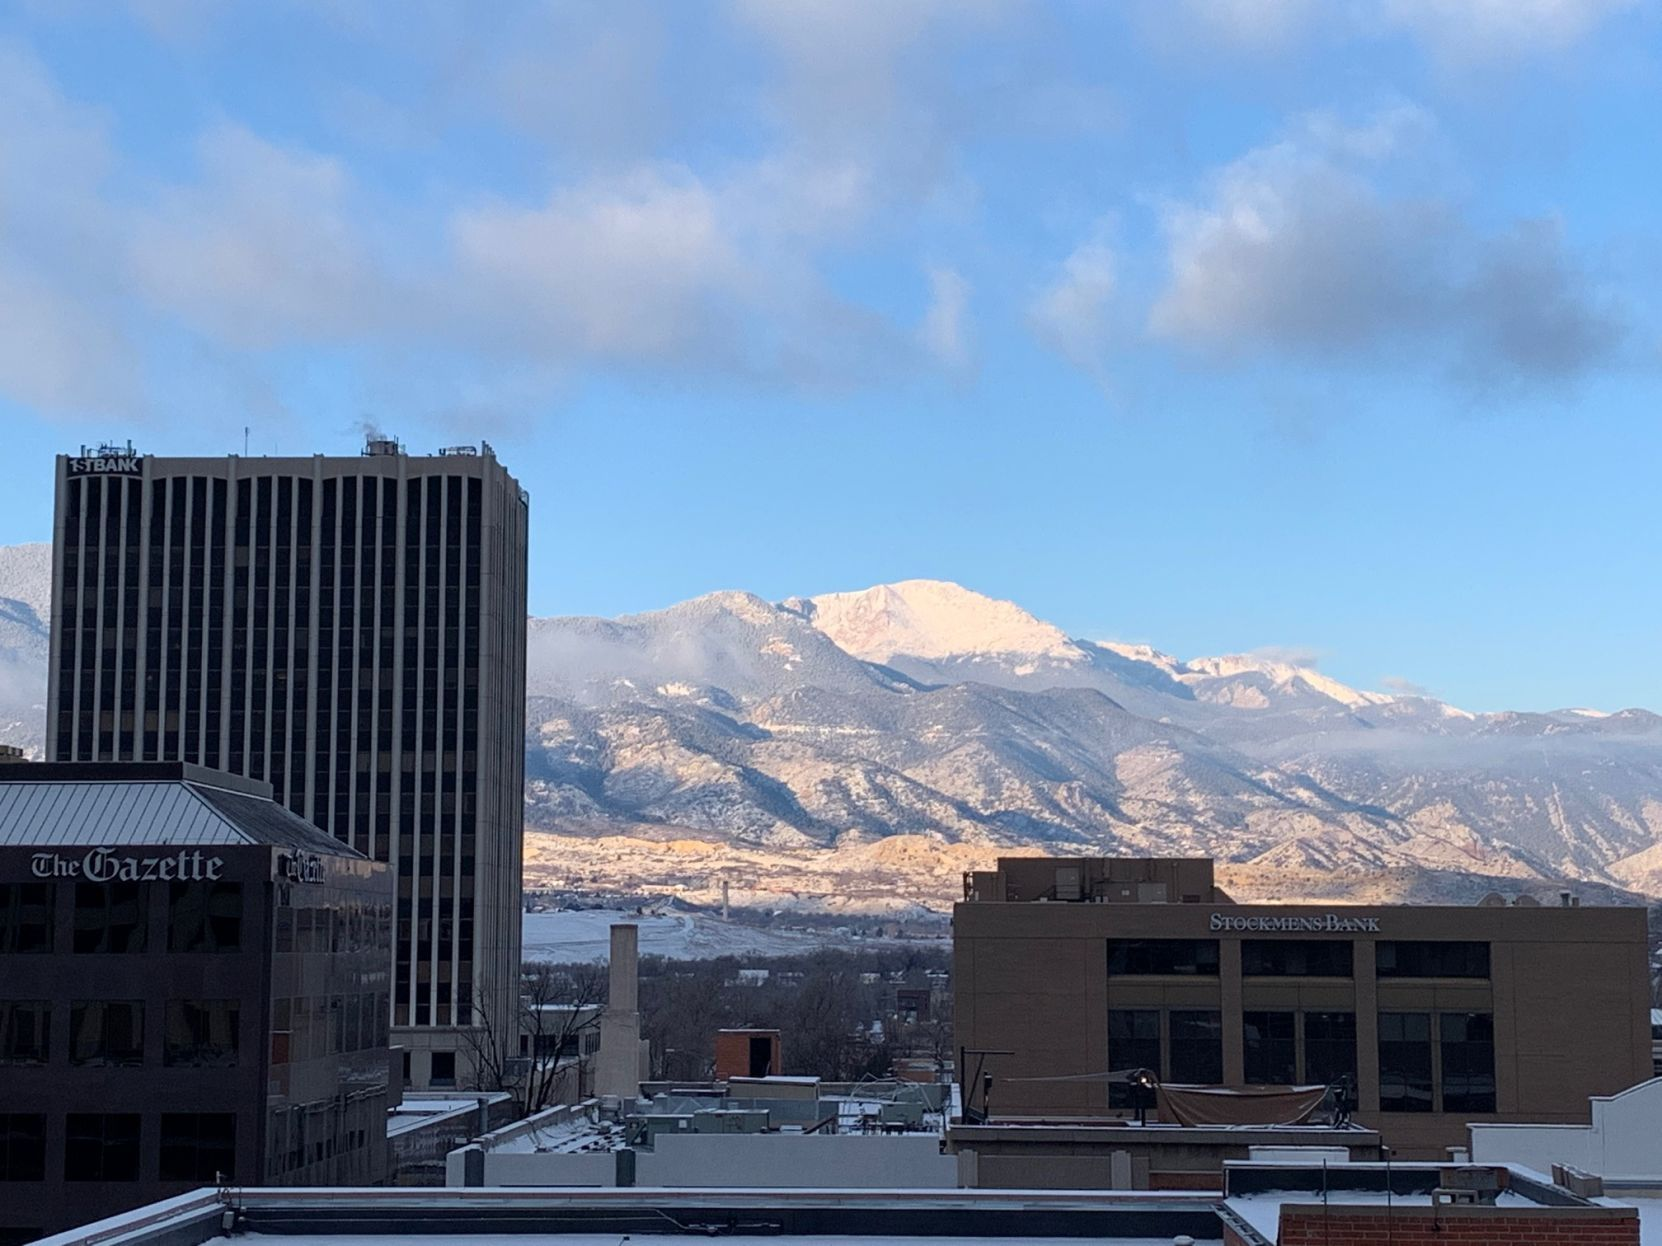 Colorado springs ranked top 5 in us for jobs in 2019